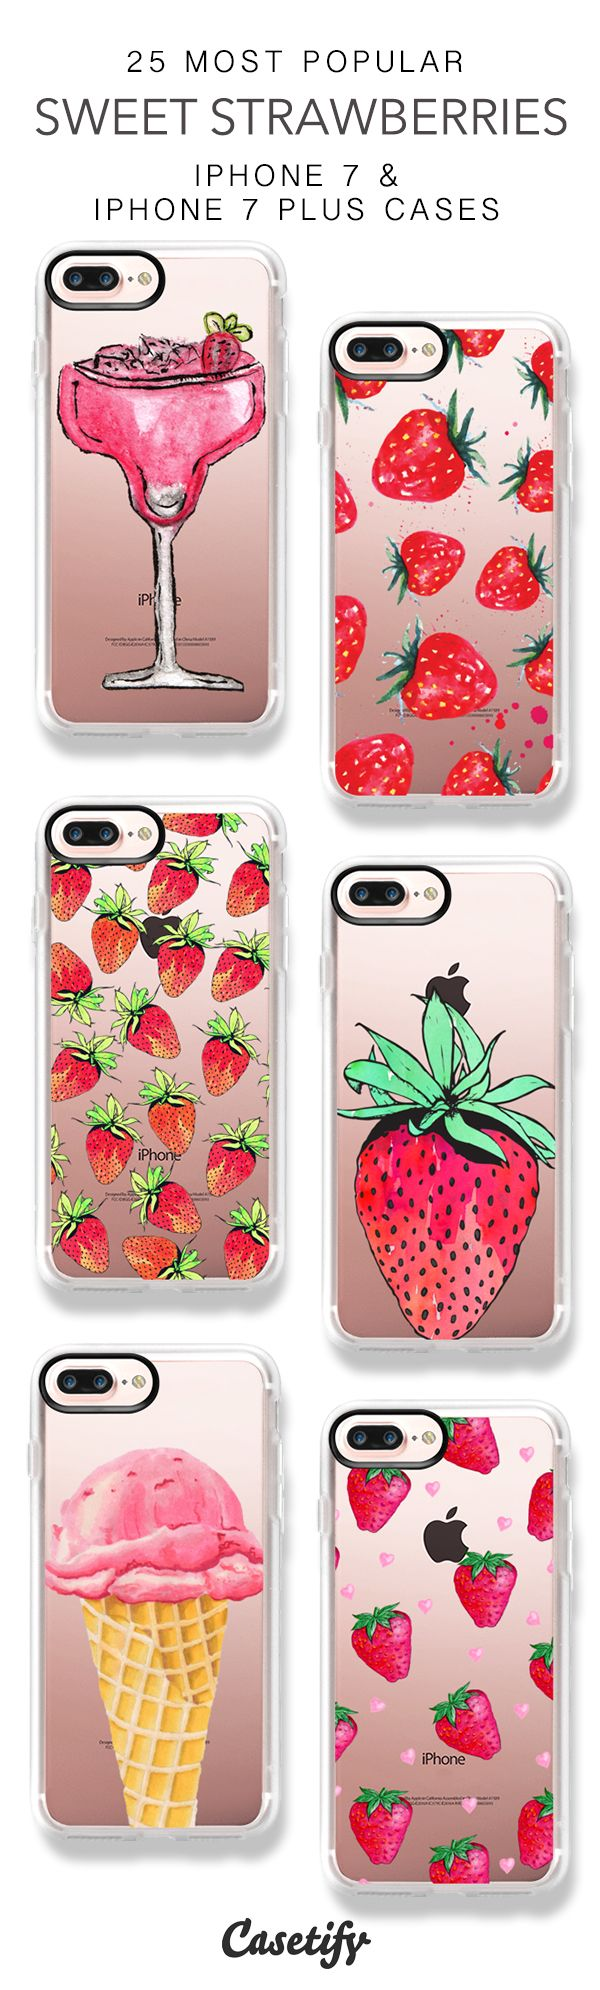 25 Most Popular Sweet Strawberry iPhone 7 Cases & iPhone 7 Plus Cases here > https://www.casetify.com/collections/top_100_designs#/?vc=ItwDLaP3Zo